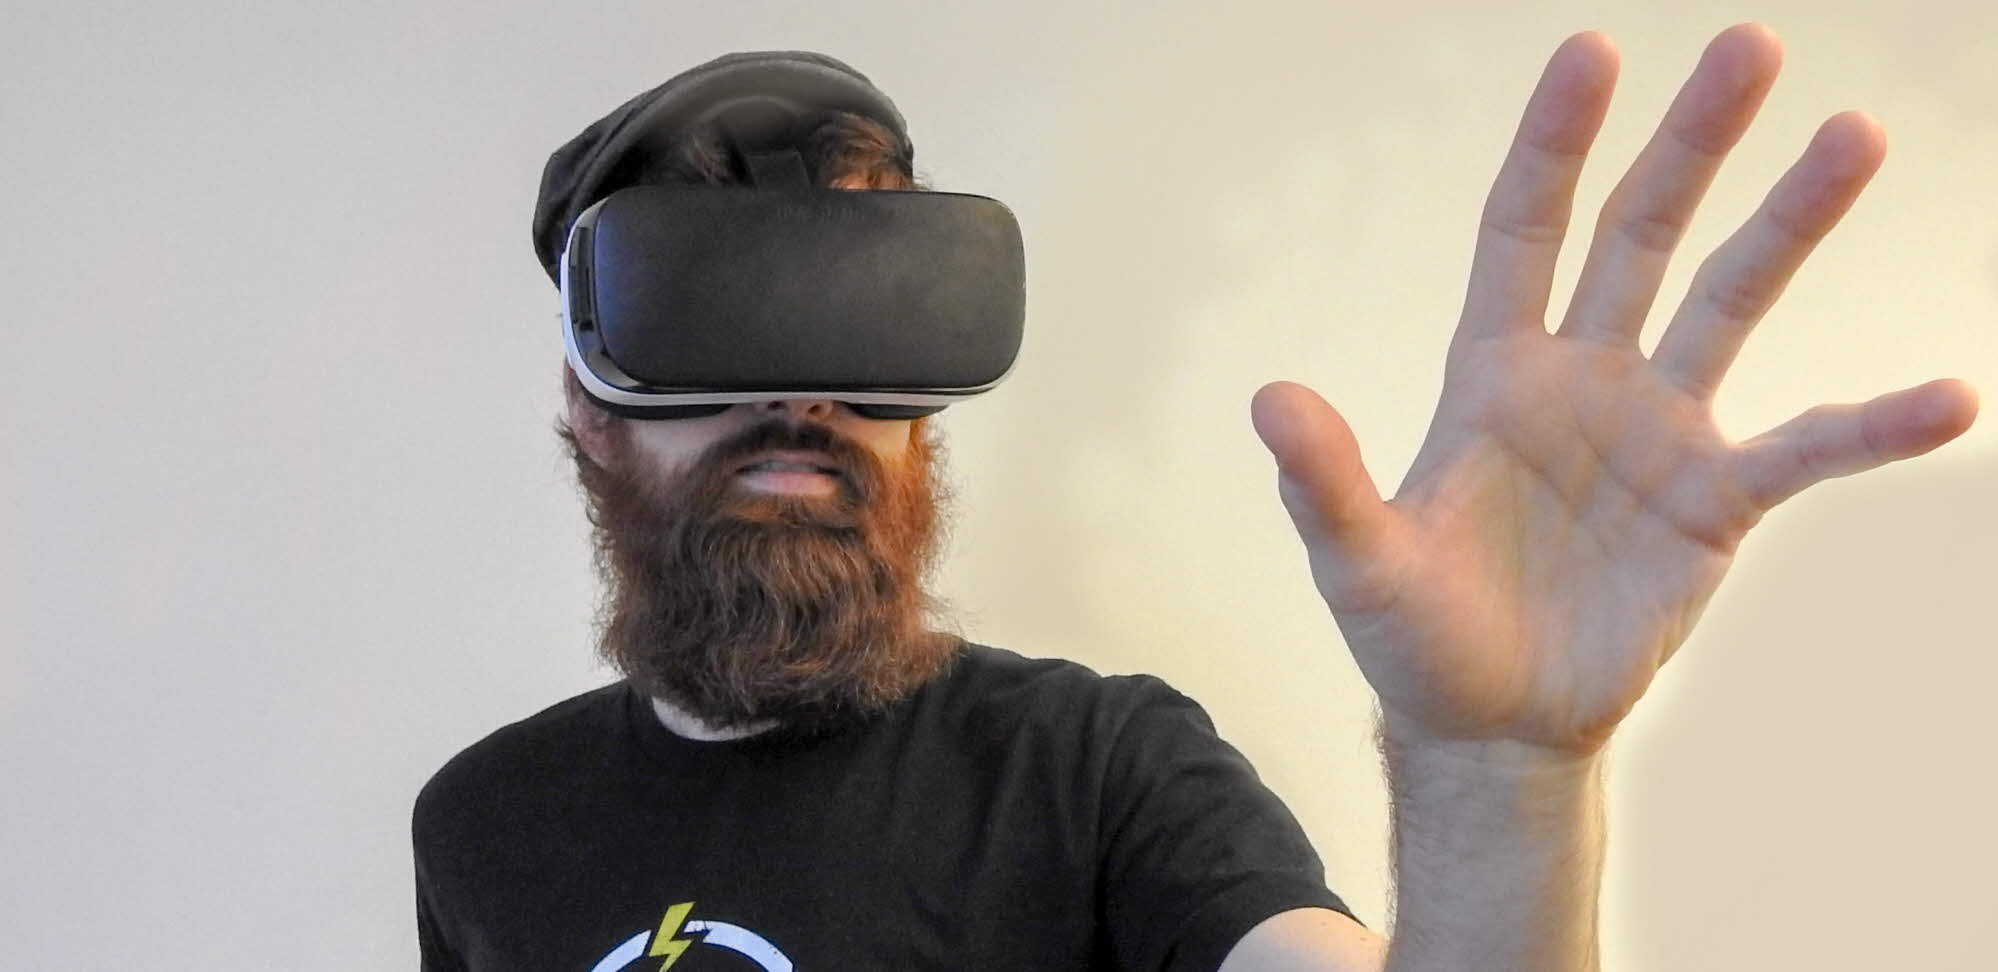 man med VR-glasögon